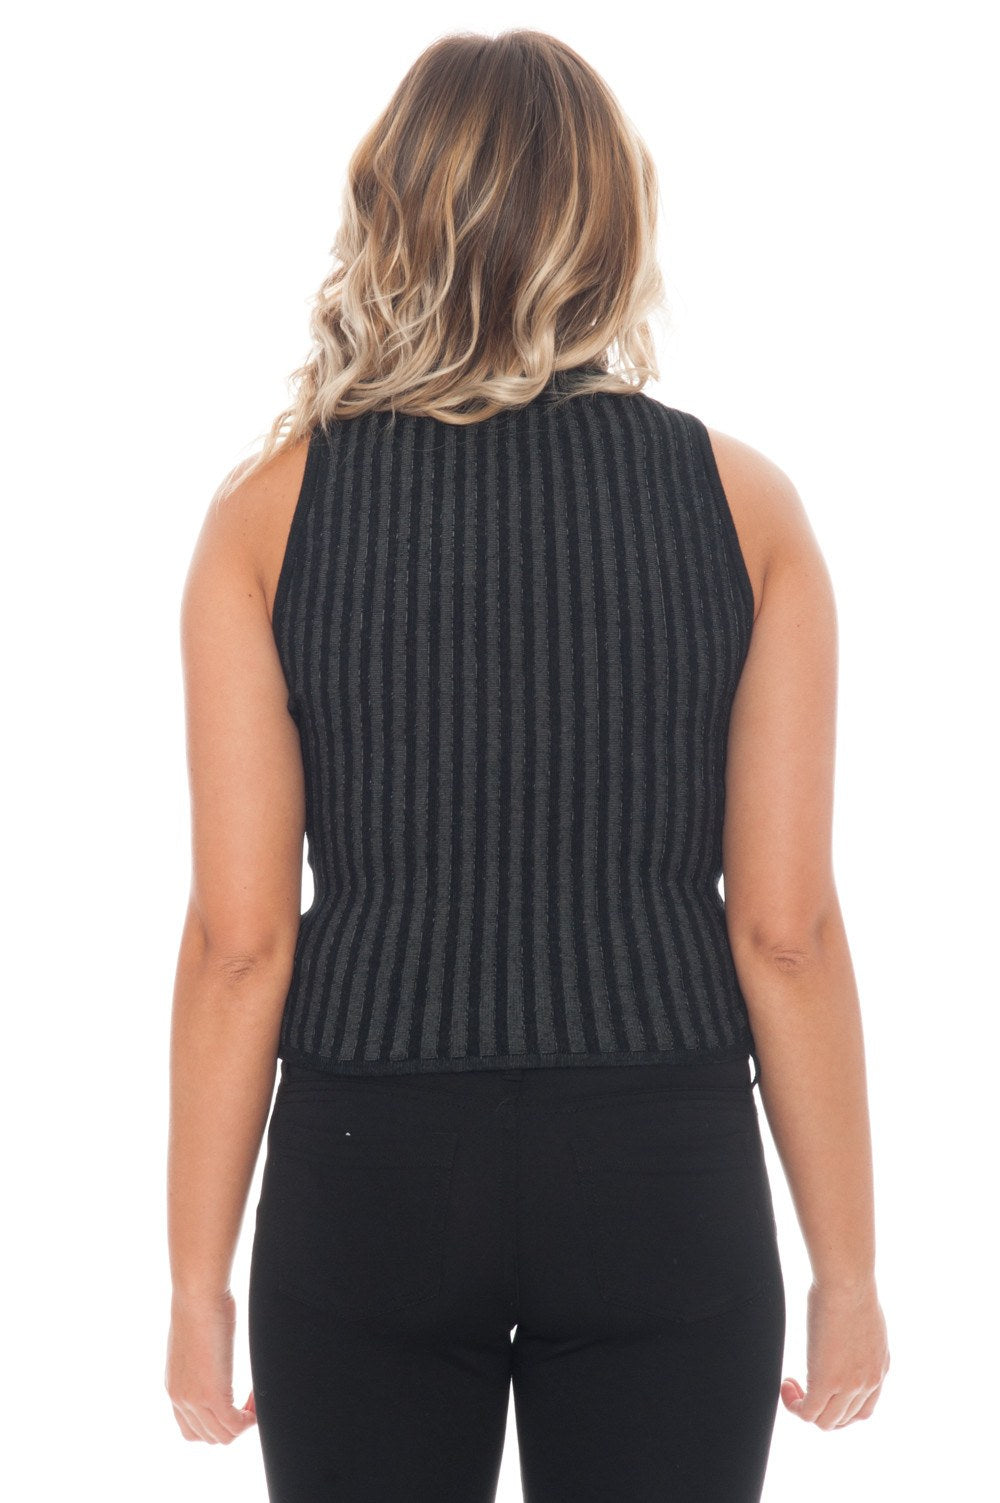 Sweater - Ribbed Knit Tank - 6